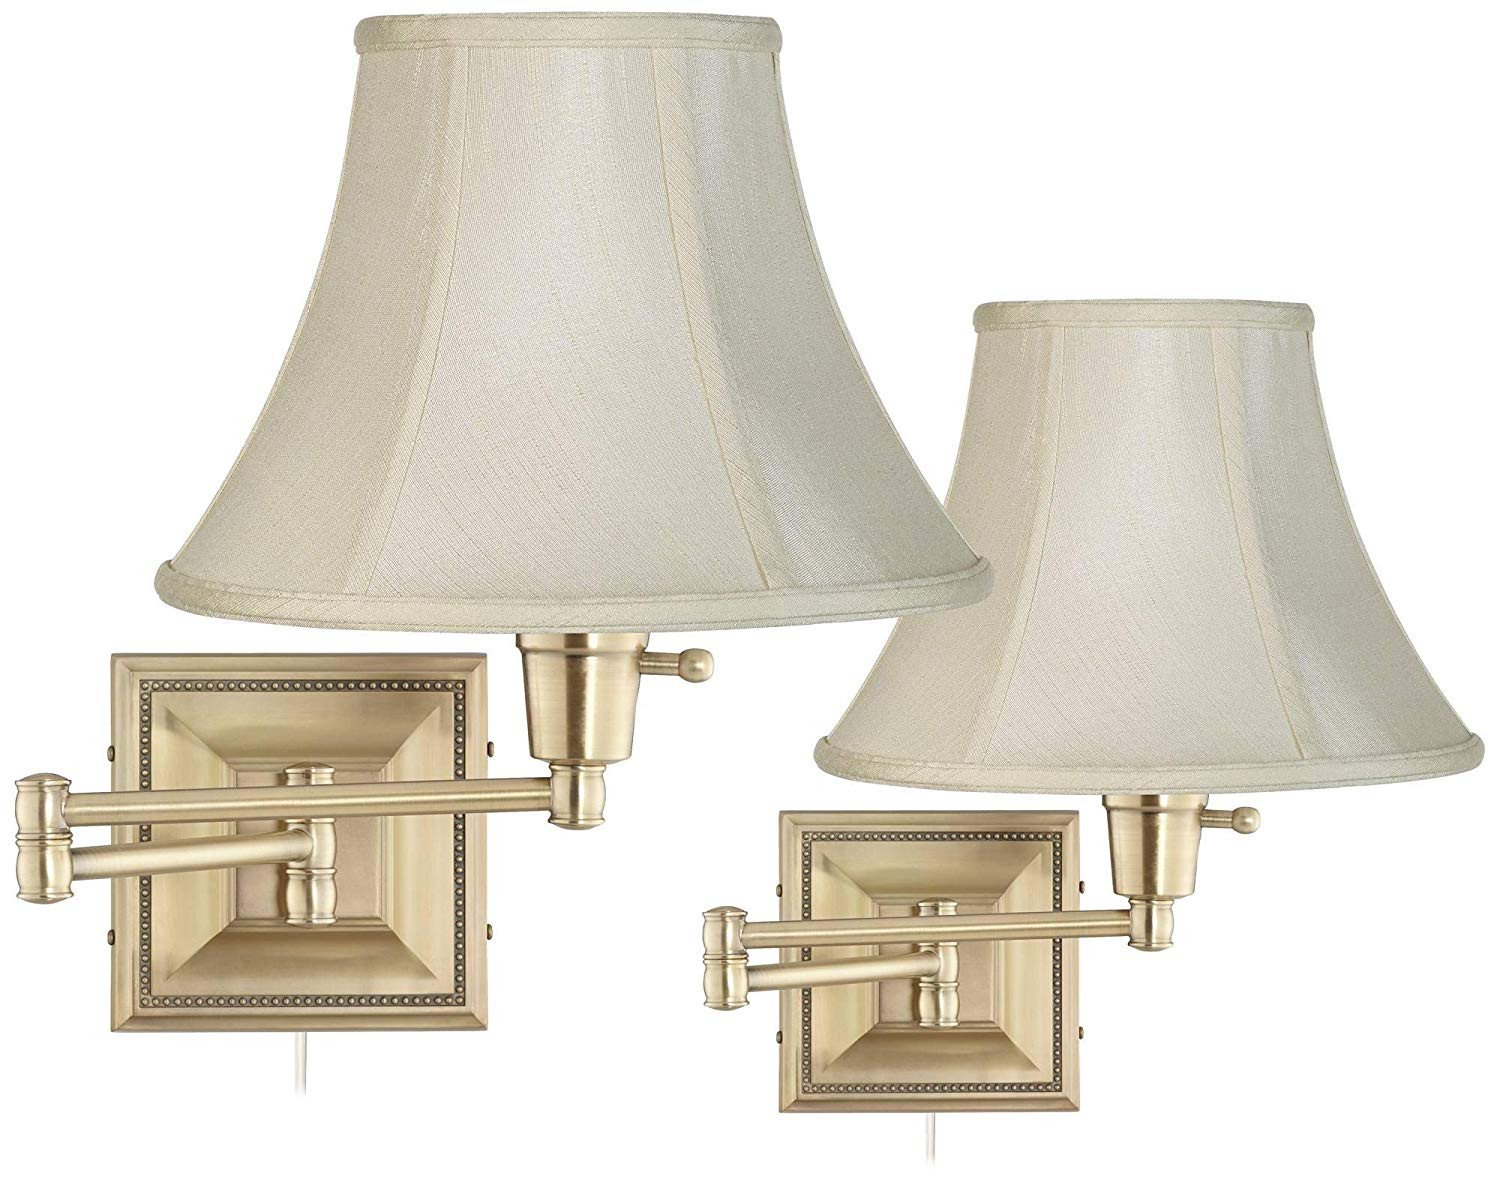 Plug In Wall Light for Bedroom Beautiful Set Of 2 Brass Finish Creme Shade Swing Arm Wall Lamps